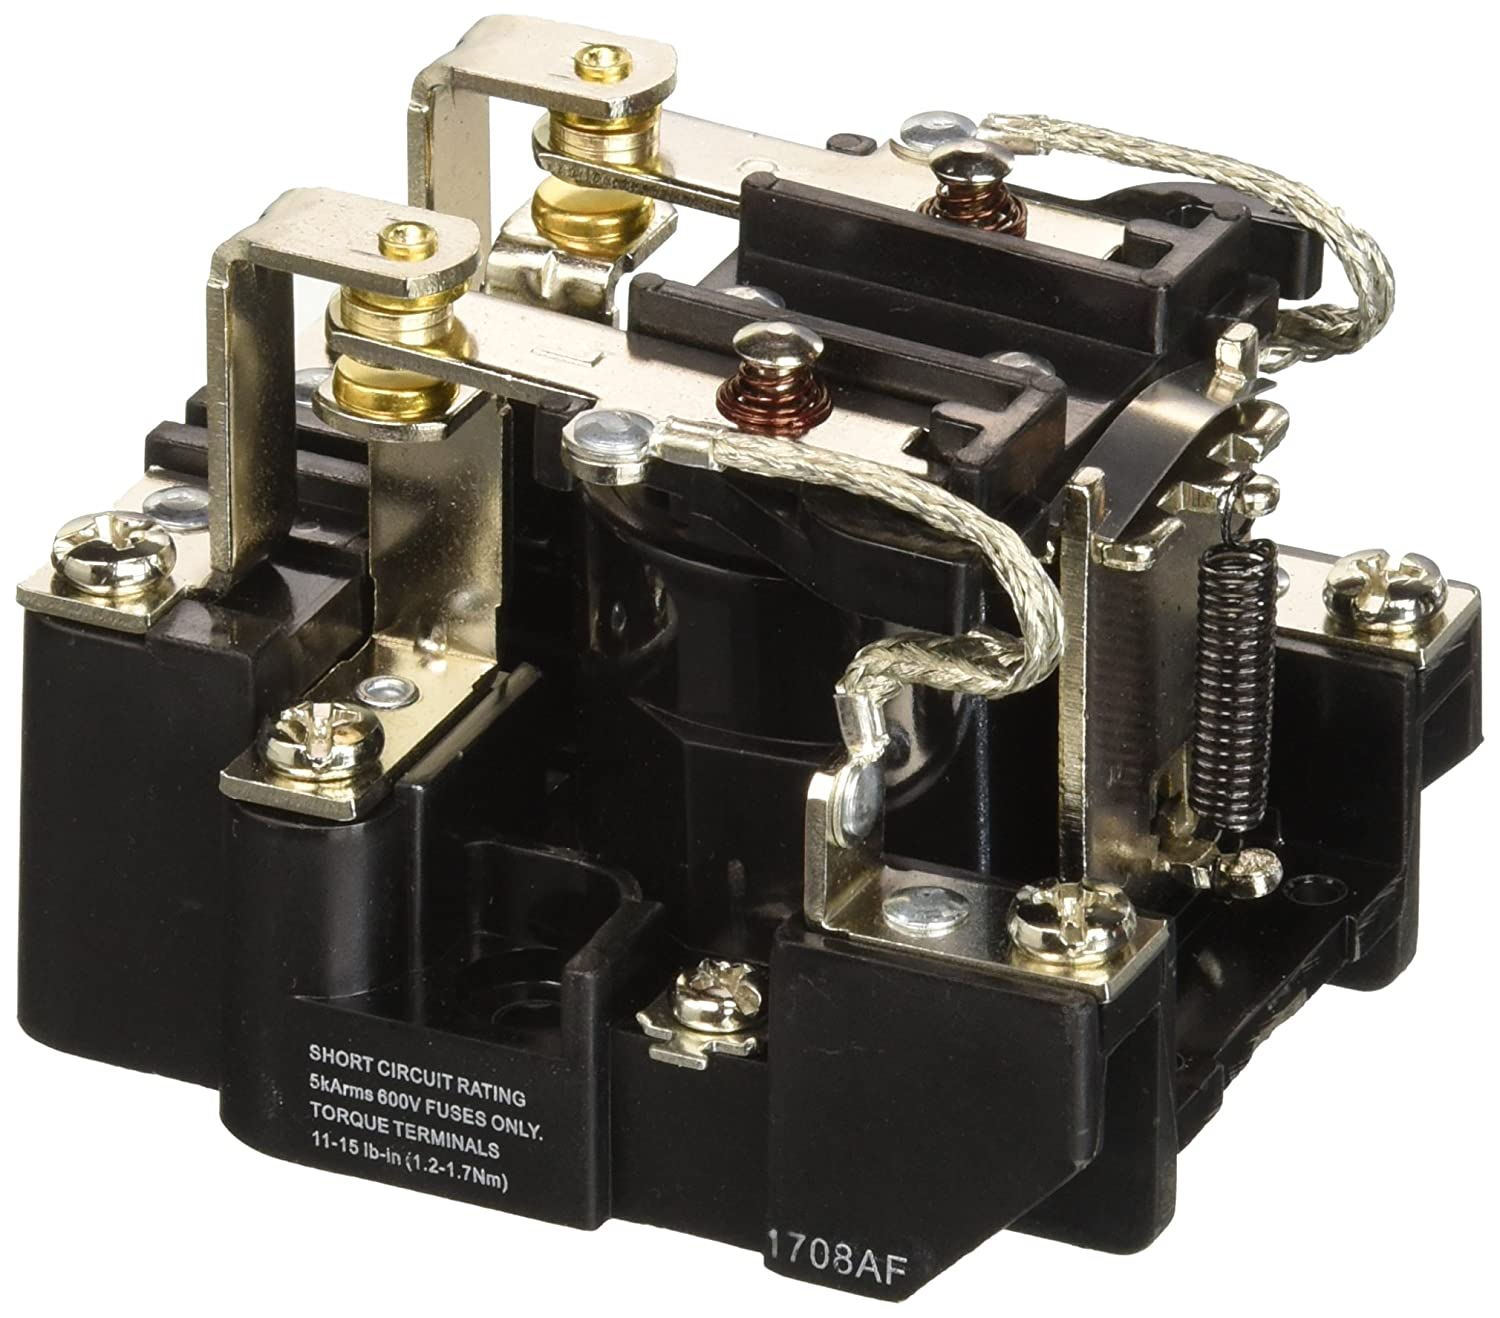 NTE Electronics R04-11A30-120 Series R4 General Purpose Multicontact AC Open Frame Relay, Heavy Duty, DPDT Contact Arrangement, 30 Amp, 120 VAC